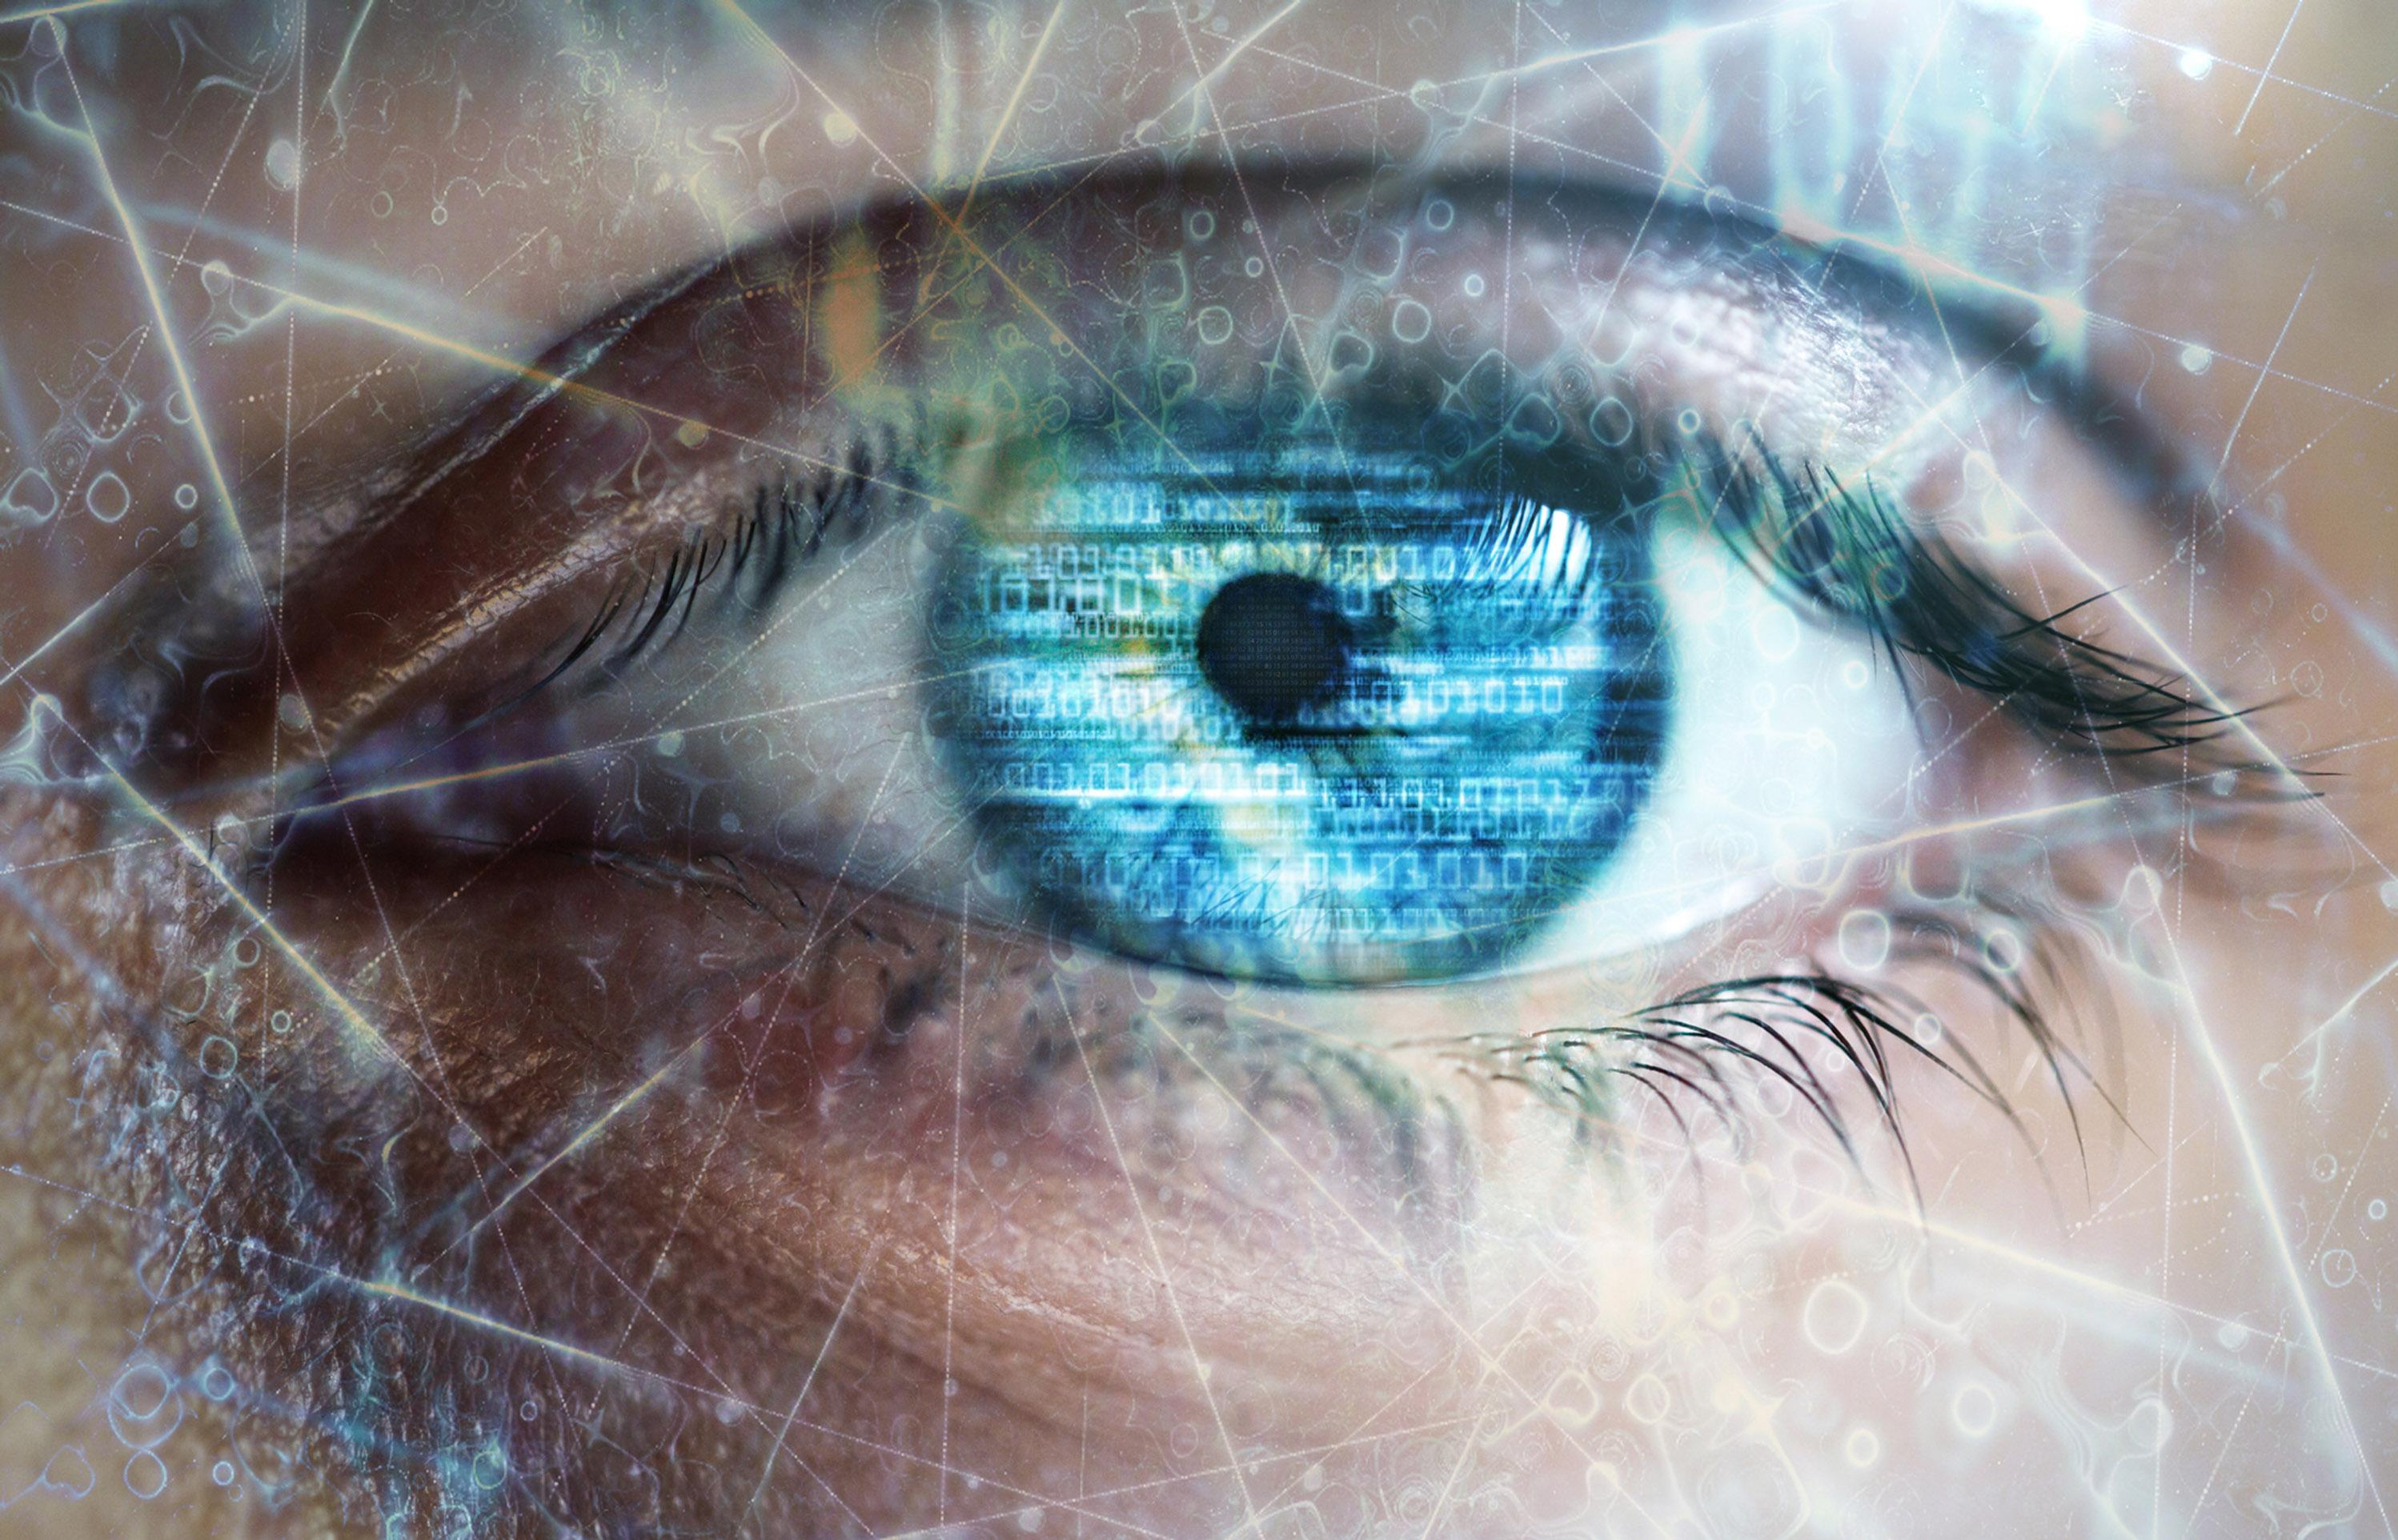 French researchers study the capacity of artificial eyes to restore sight in AMD patients